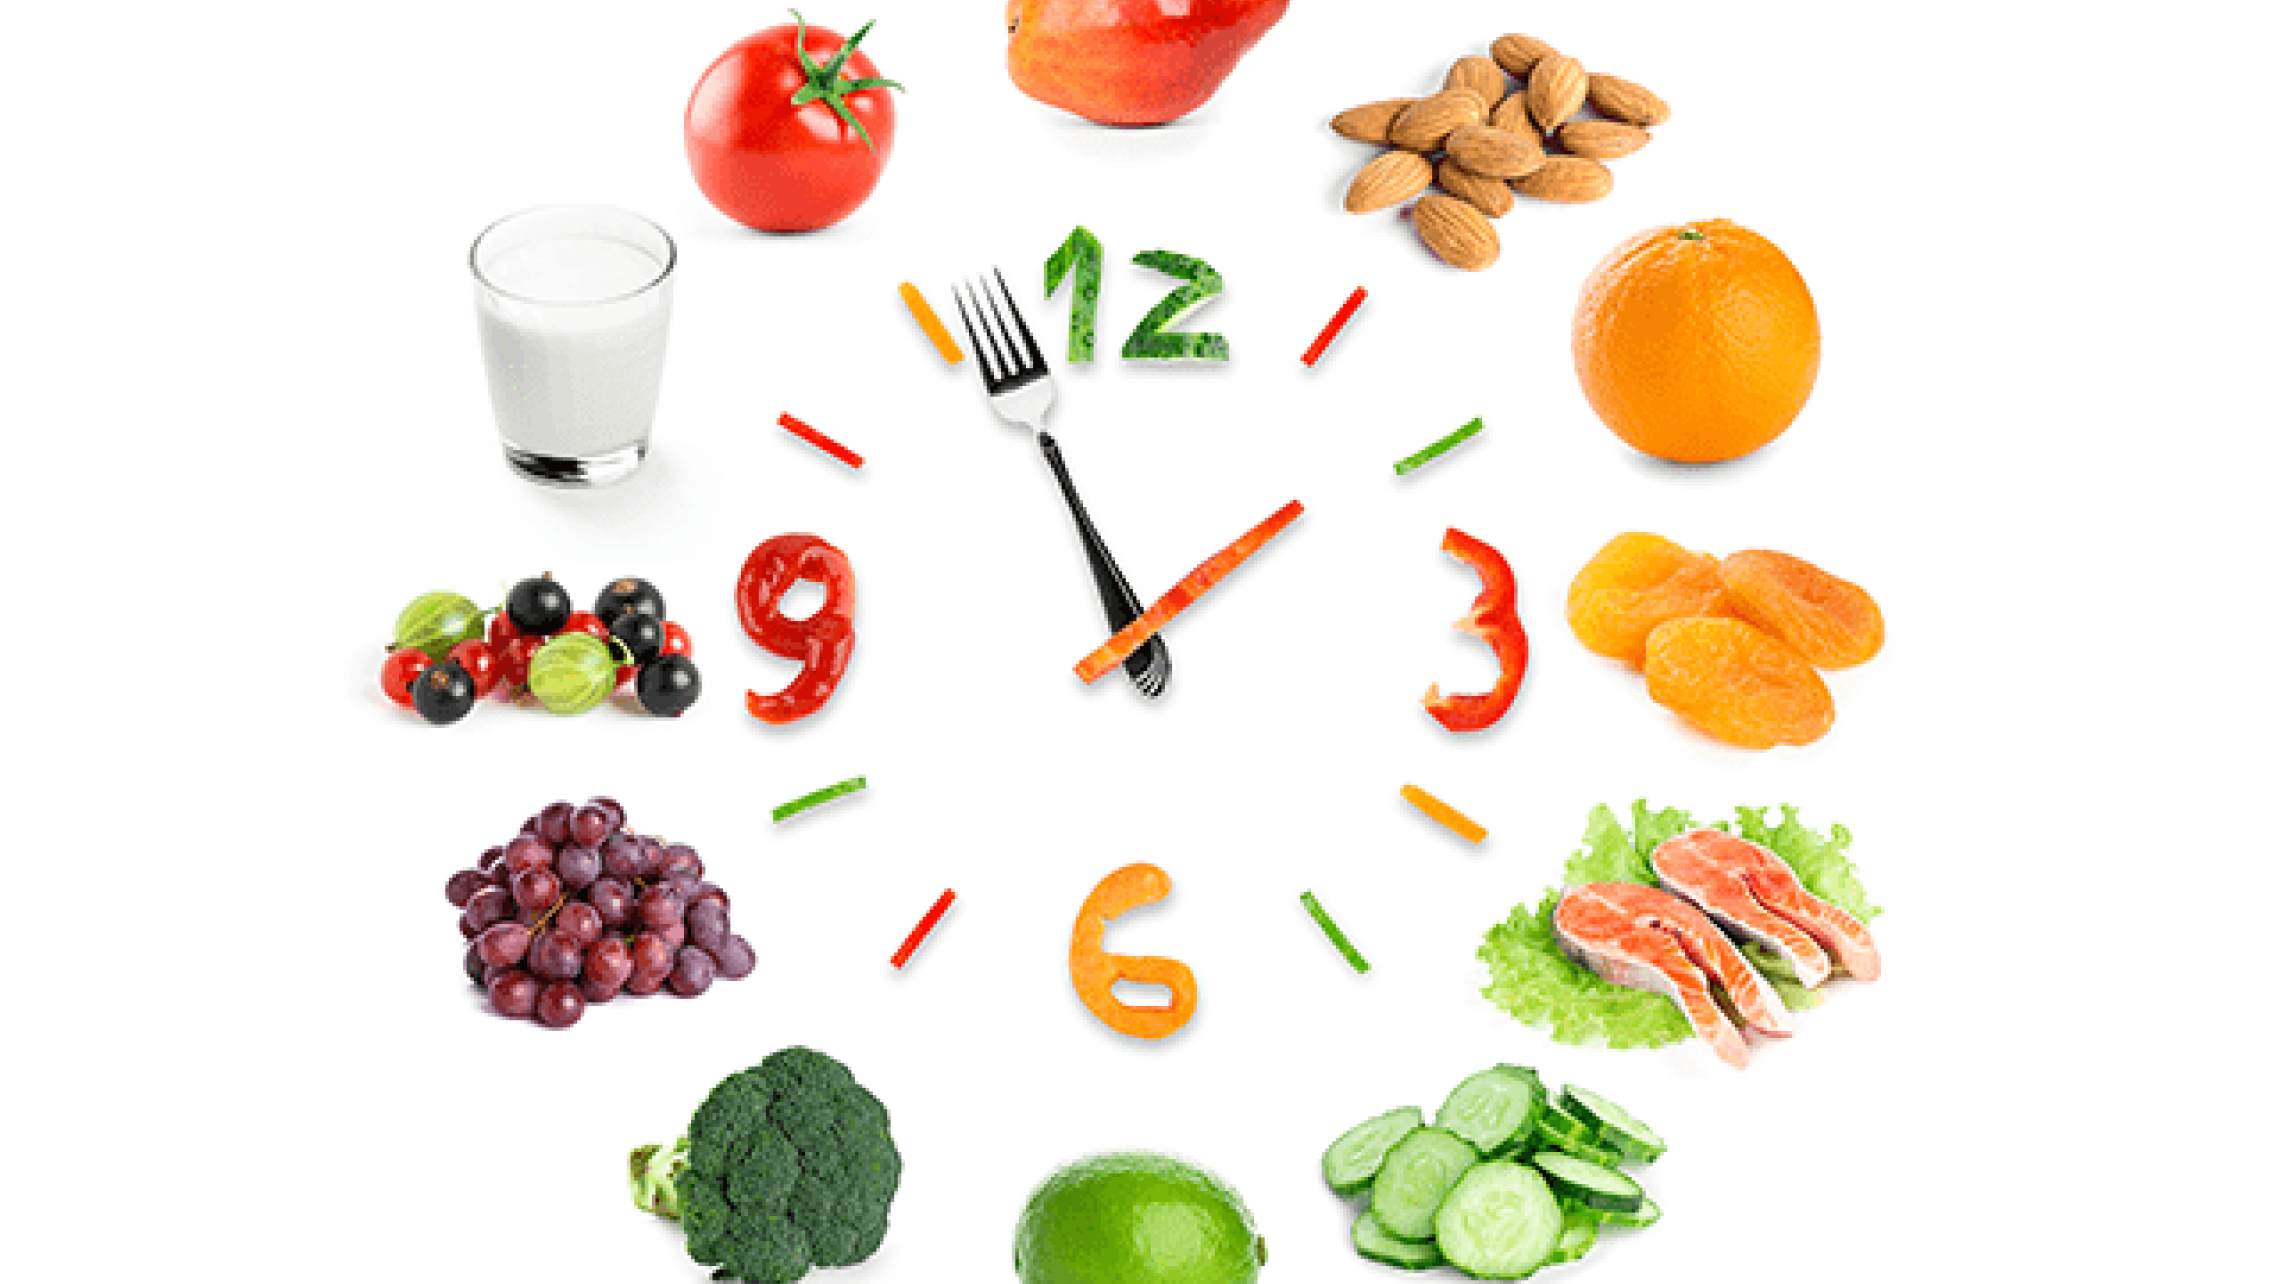 xtra-fit-blog-meal-timing